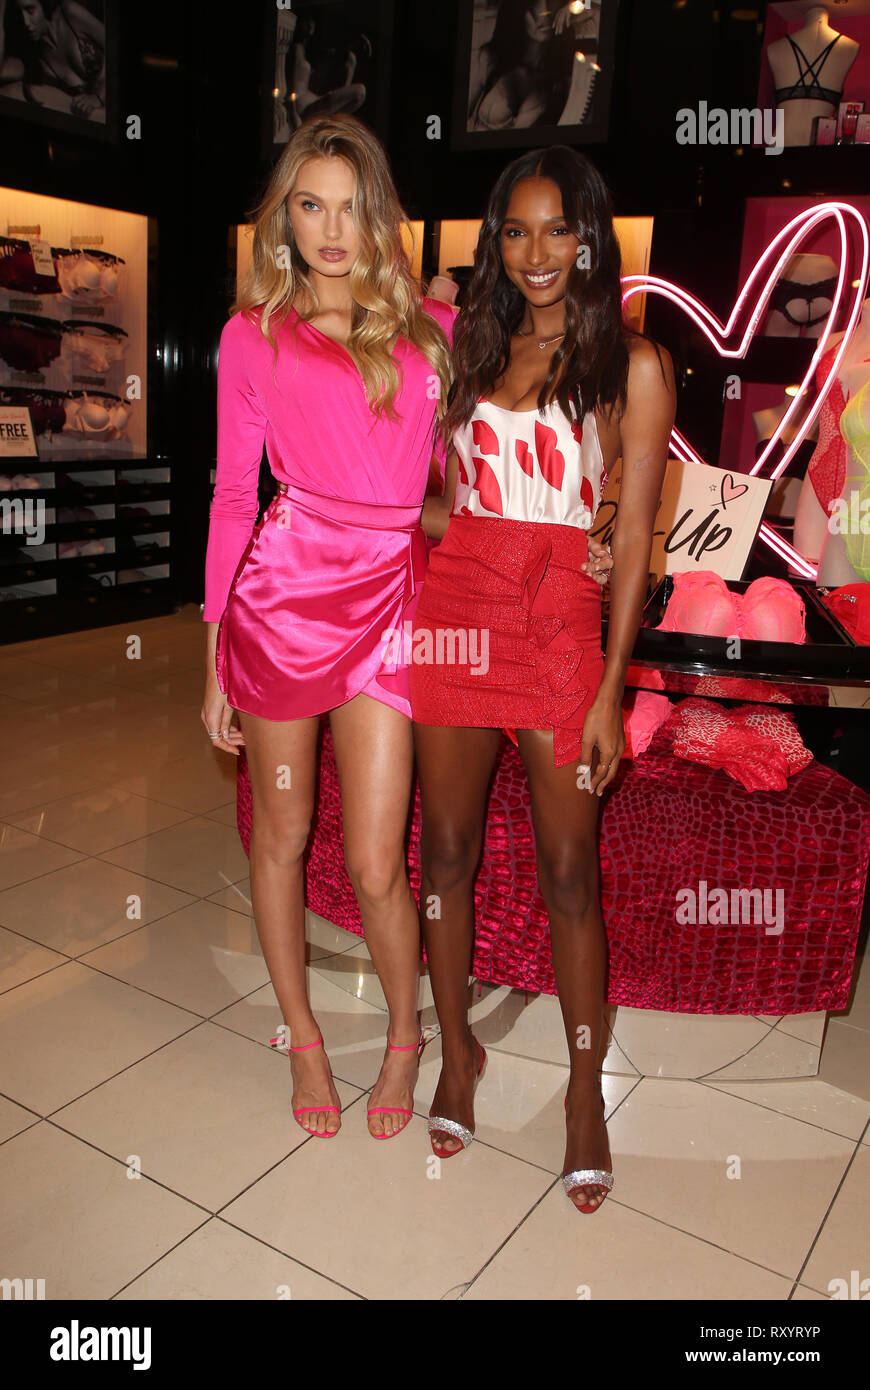 b92995a95d Victoria s Secret Angels Jasmine Tookes And Romee Strijd Celebrate  Valentines Day Featuring  Romee Strijd